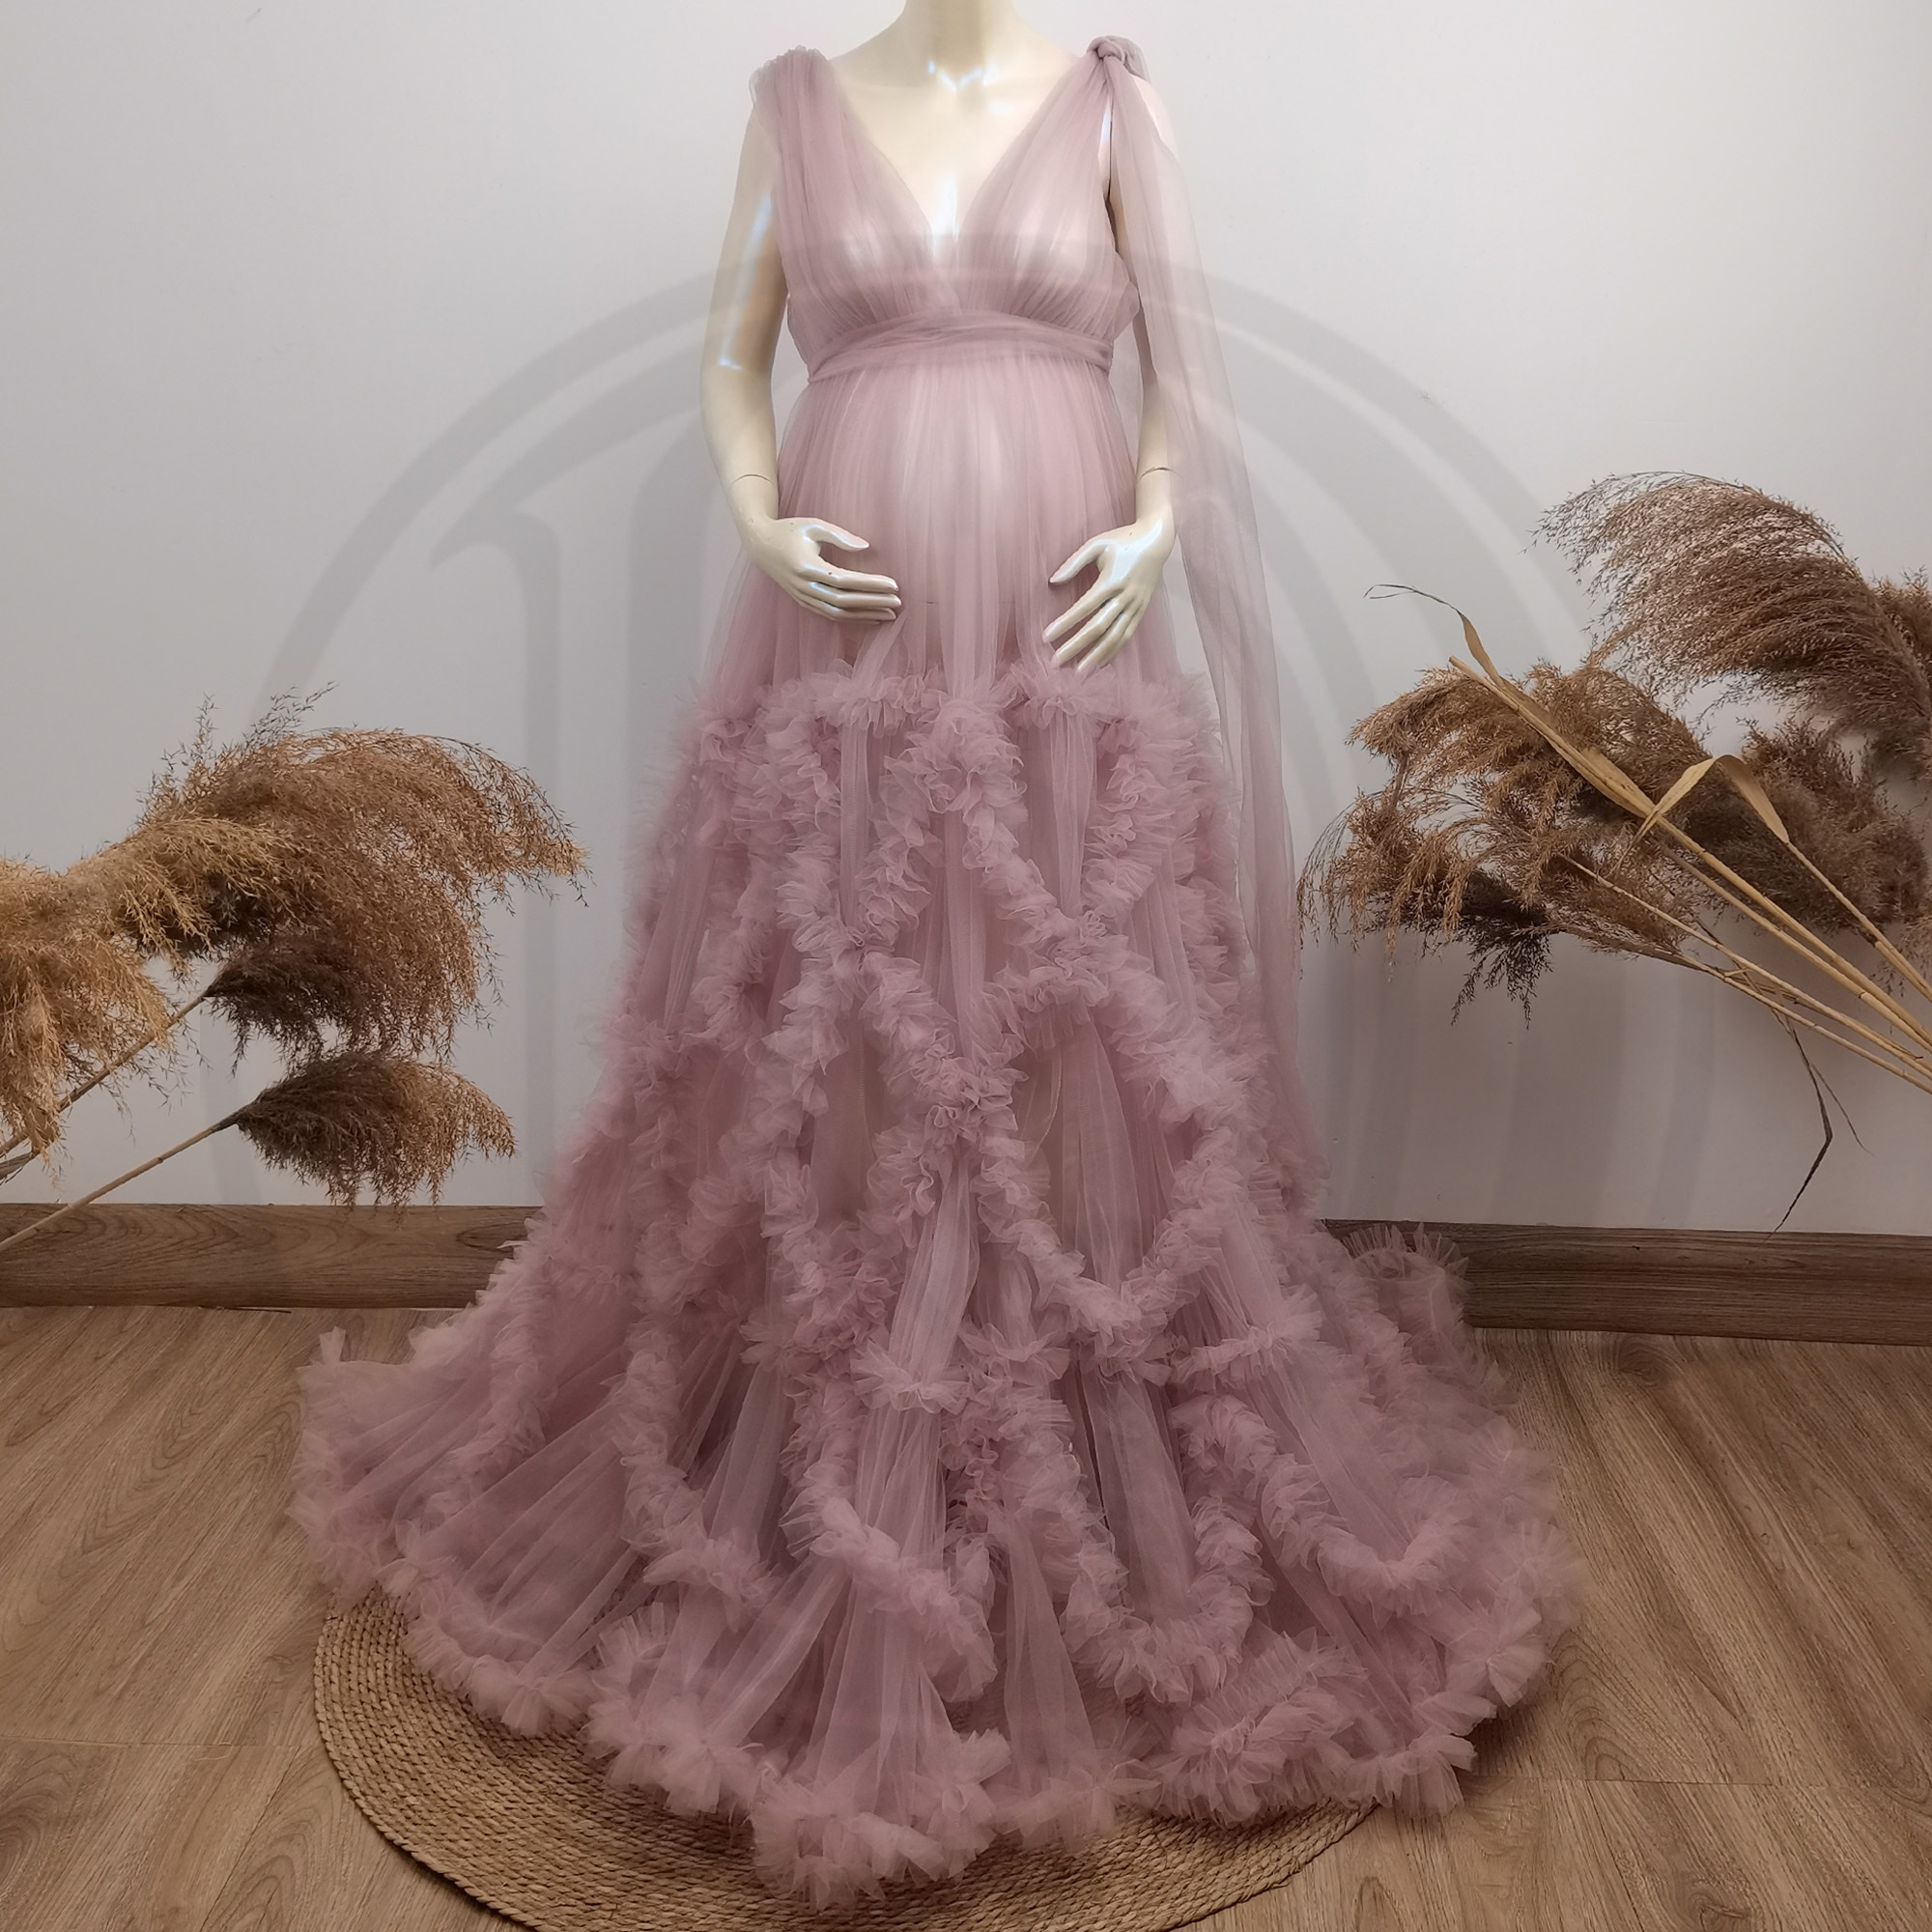 Photo Shoot Props Light Purple Tulle Maternity Cothing Pregnant Gown Couture Robe Woman Photography Costume Baby Shower Dress